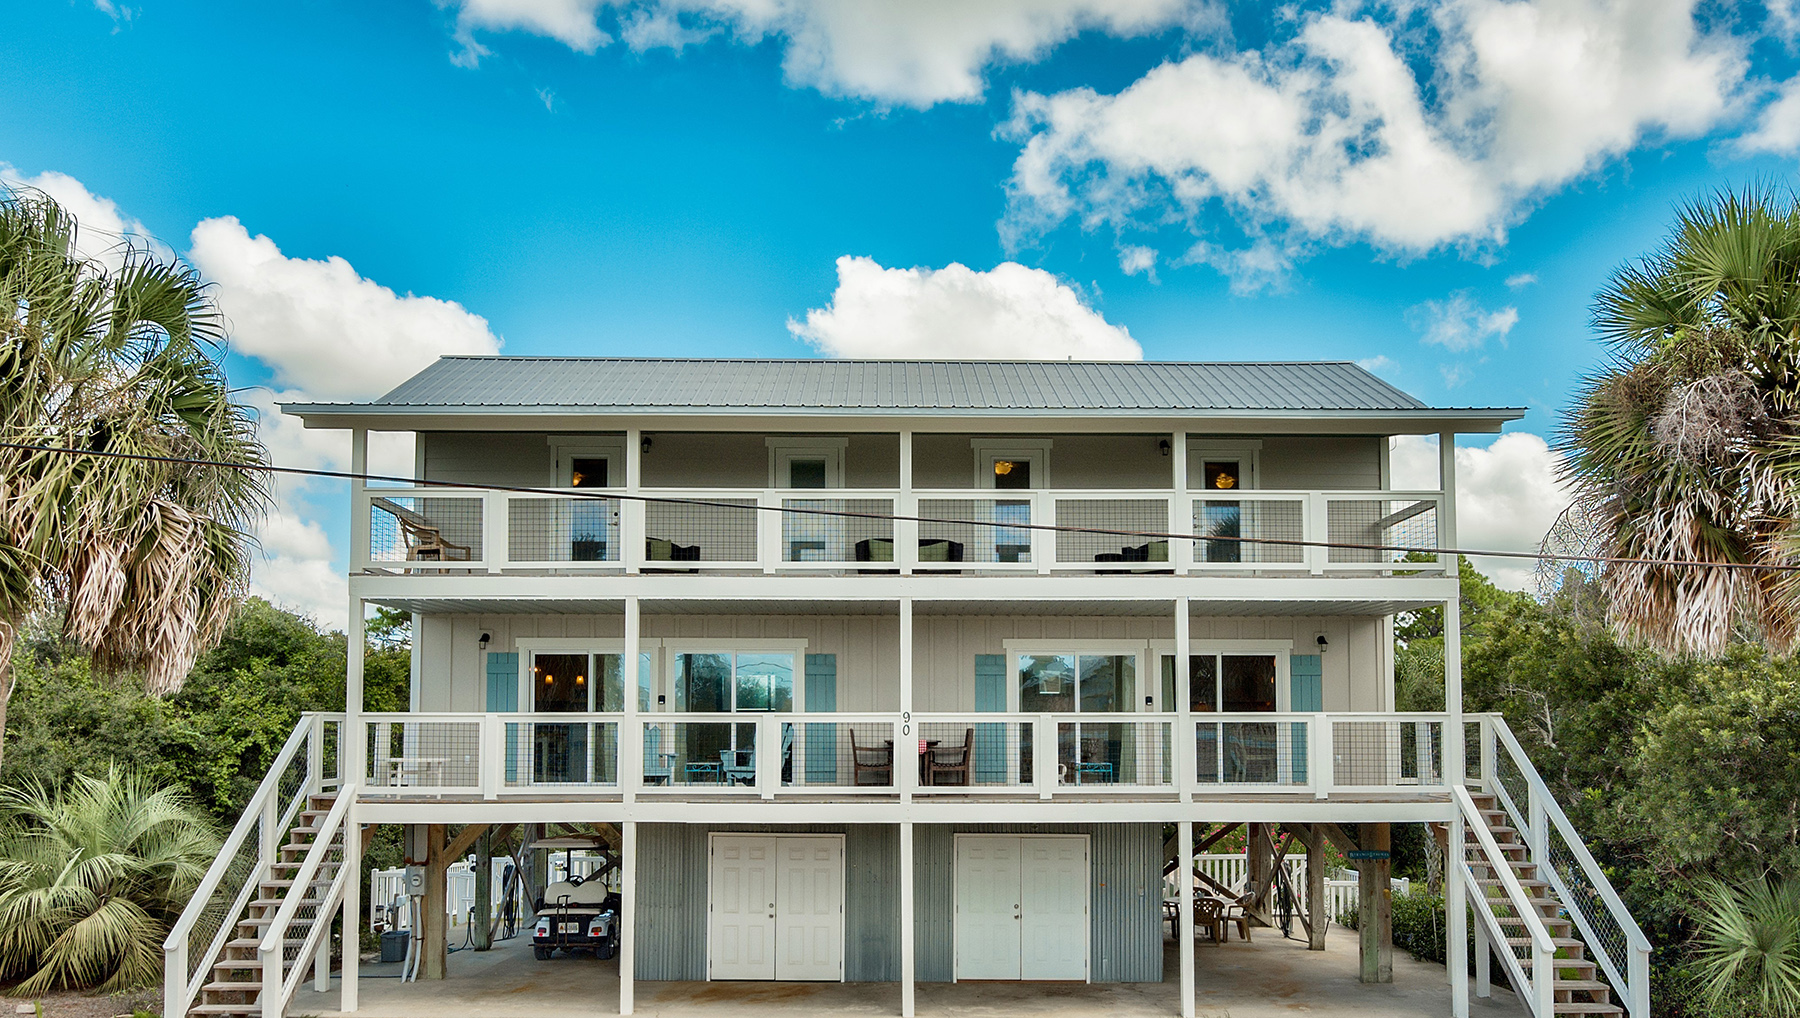 Частный односемейный дом для того Продажа на Gulf View Duplex in the Heart of Seagrove Beach 90 Birmingham Street, Santa Rosa Beach, Флорида, 32459 Соединенные Штаты